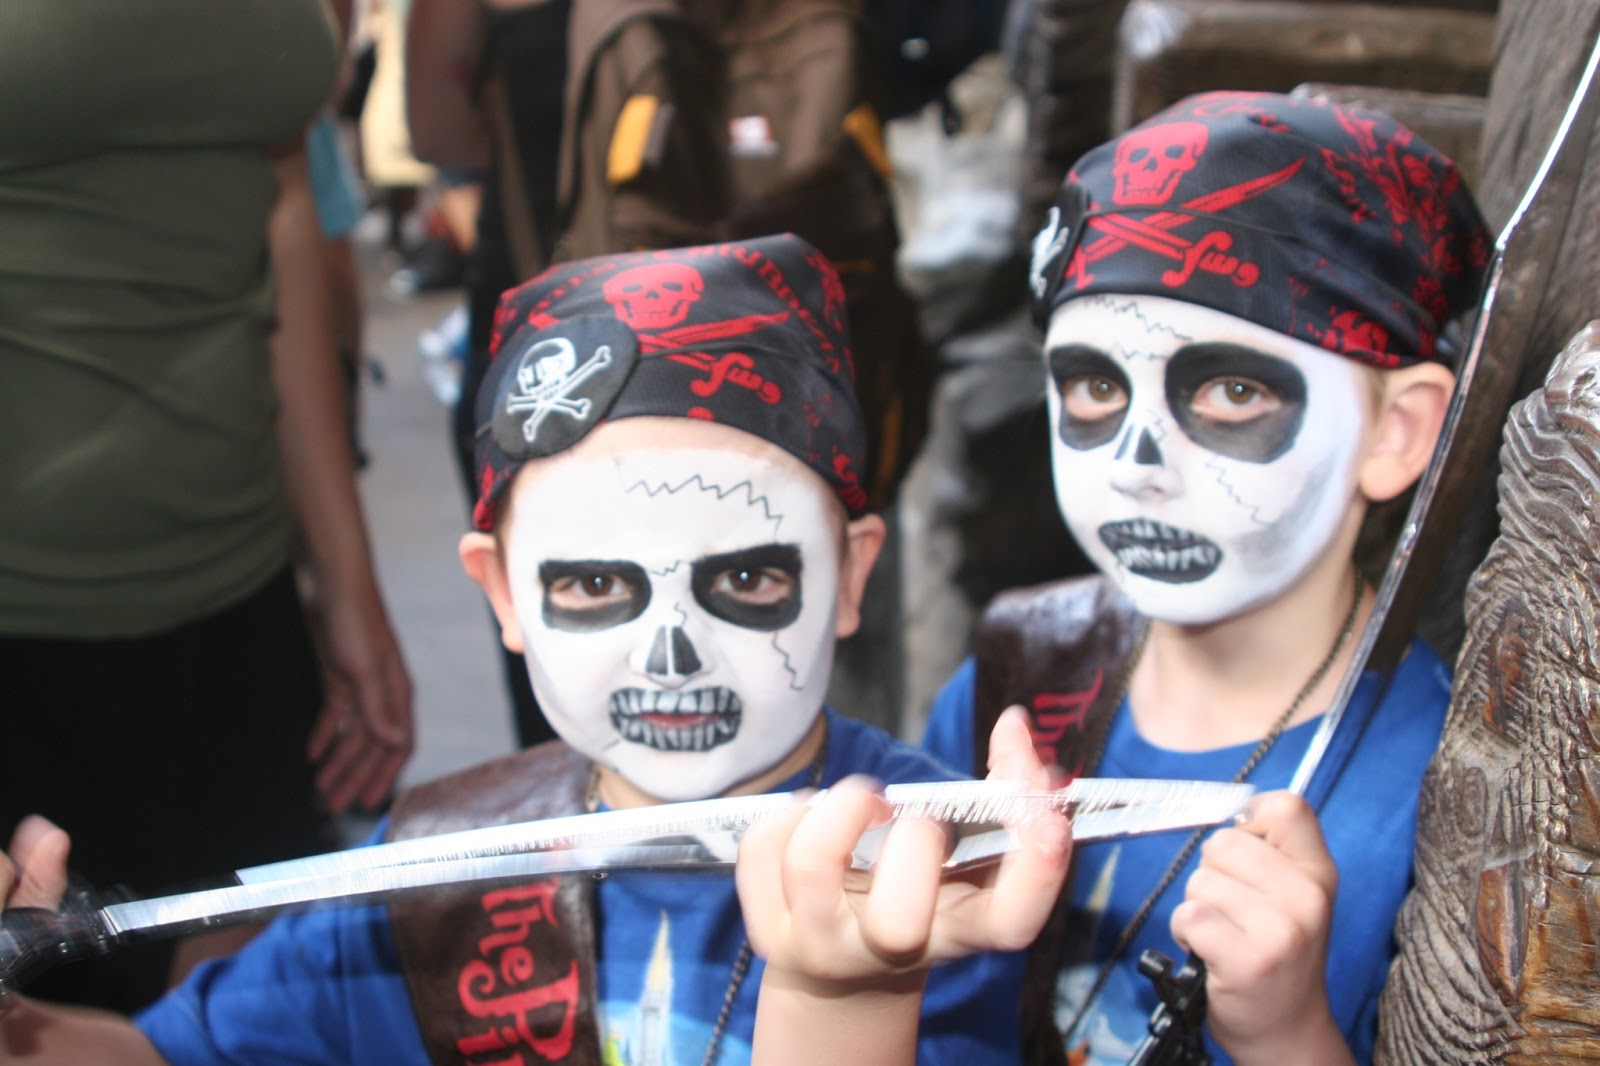 pirate costume, pirate makeup, Walt Disney World, Magic Kingdom, kids